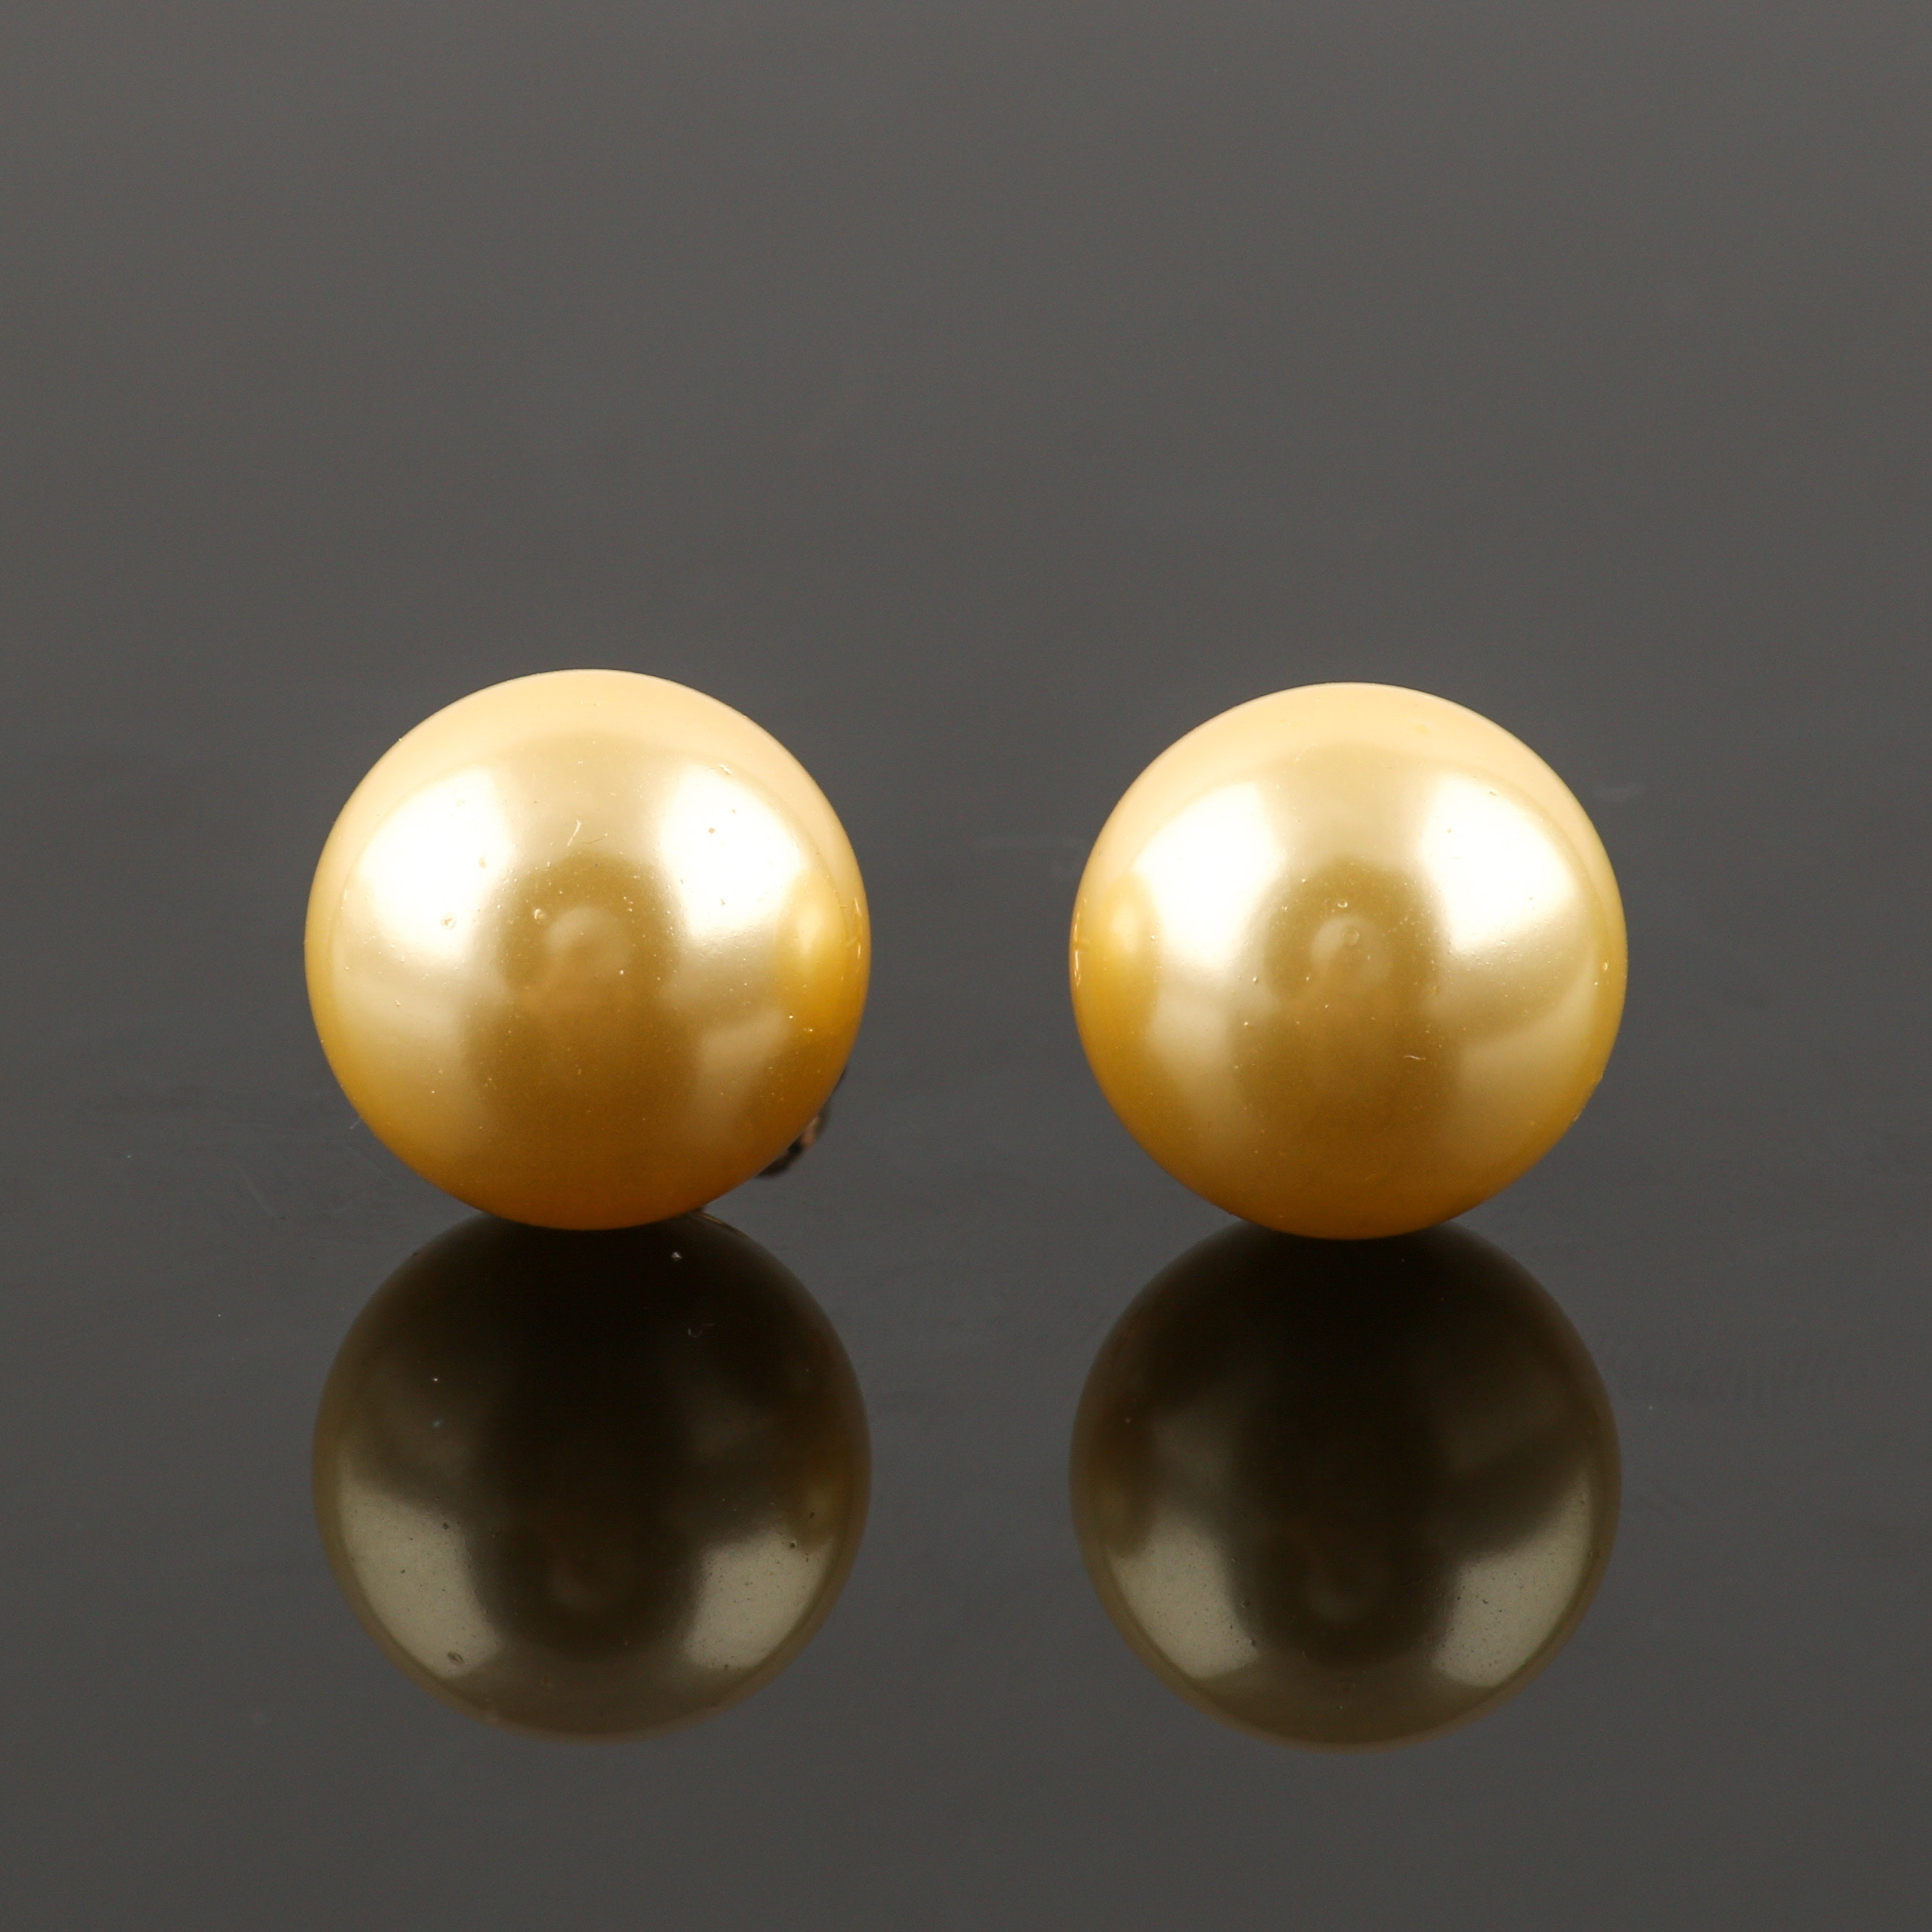 14K Yellow Gold Cultured South Sea Pearl Stud Earrings